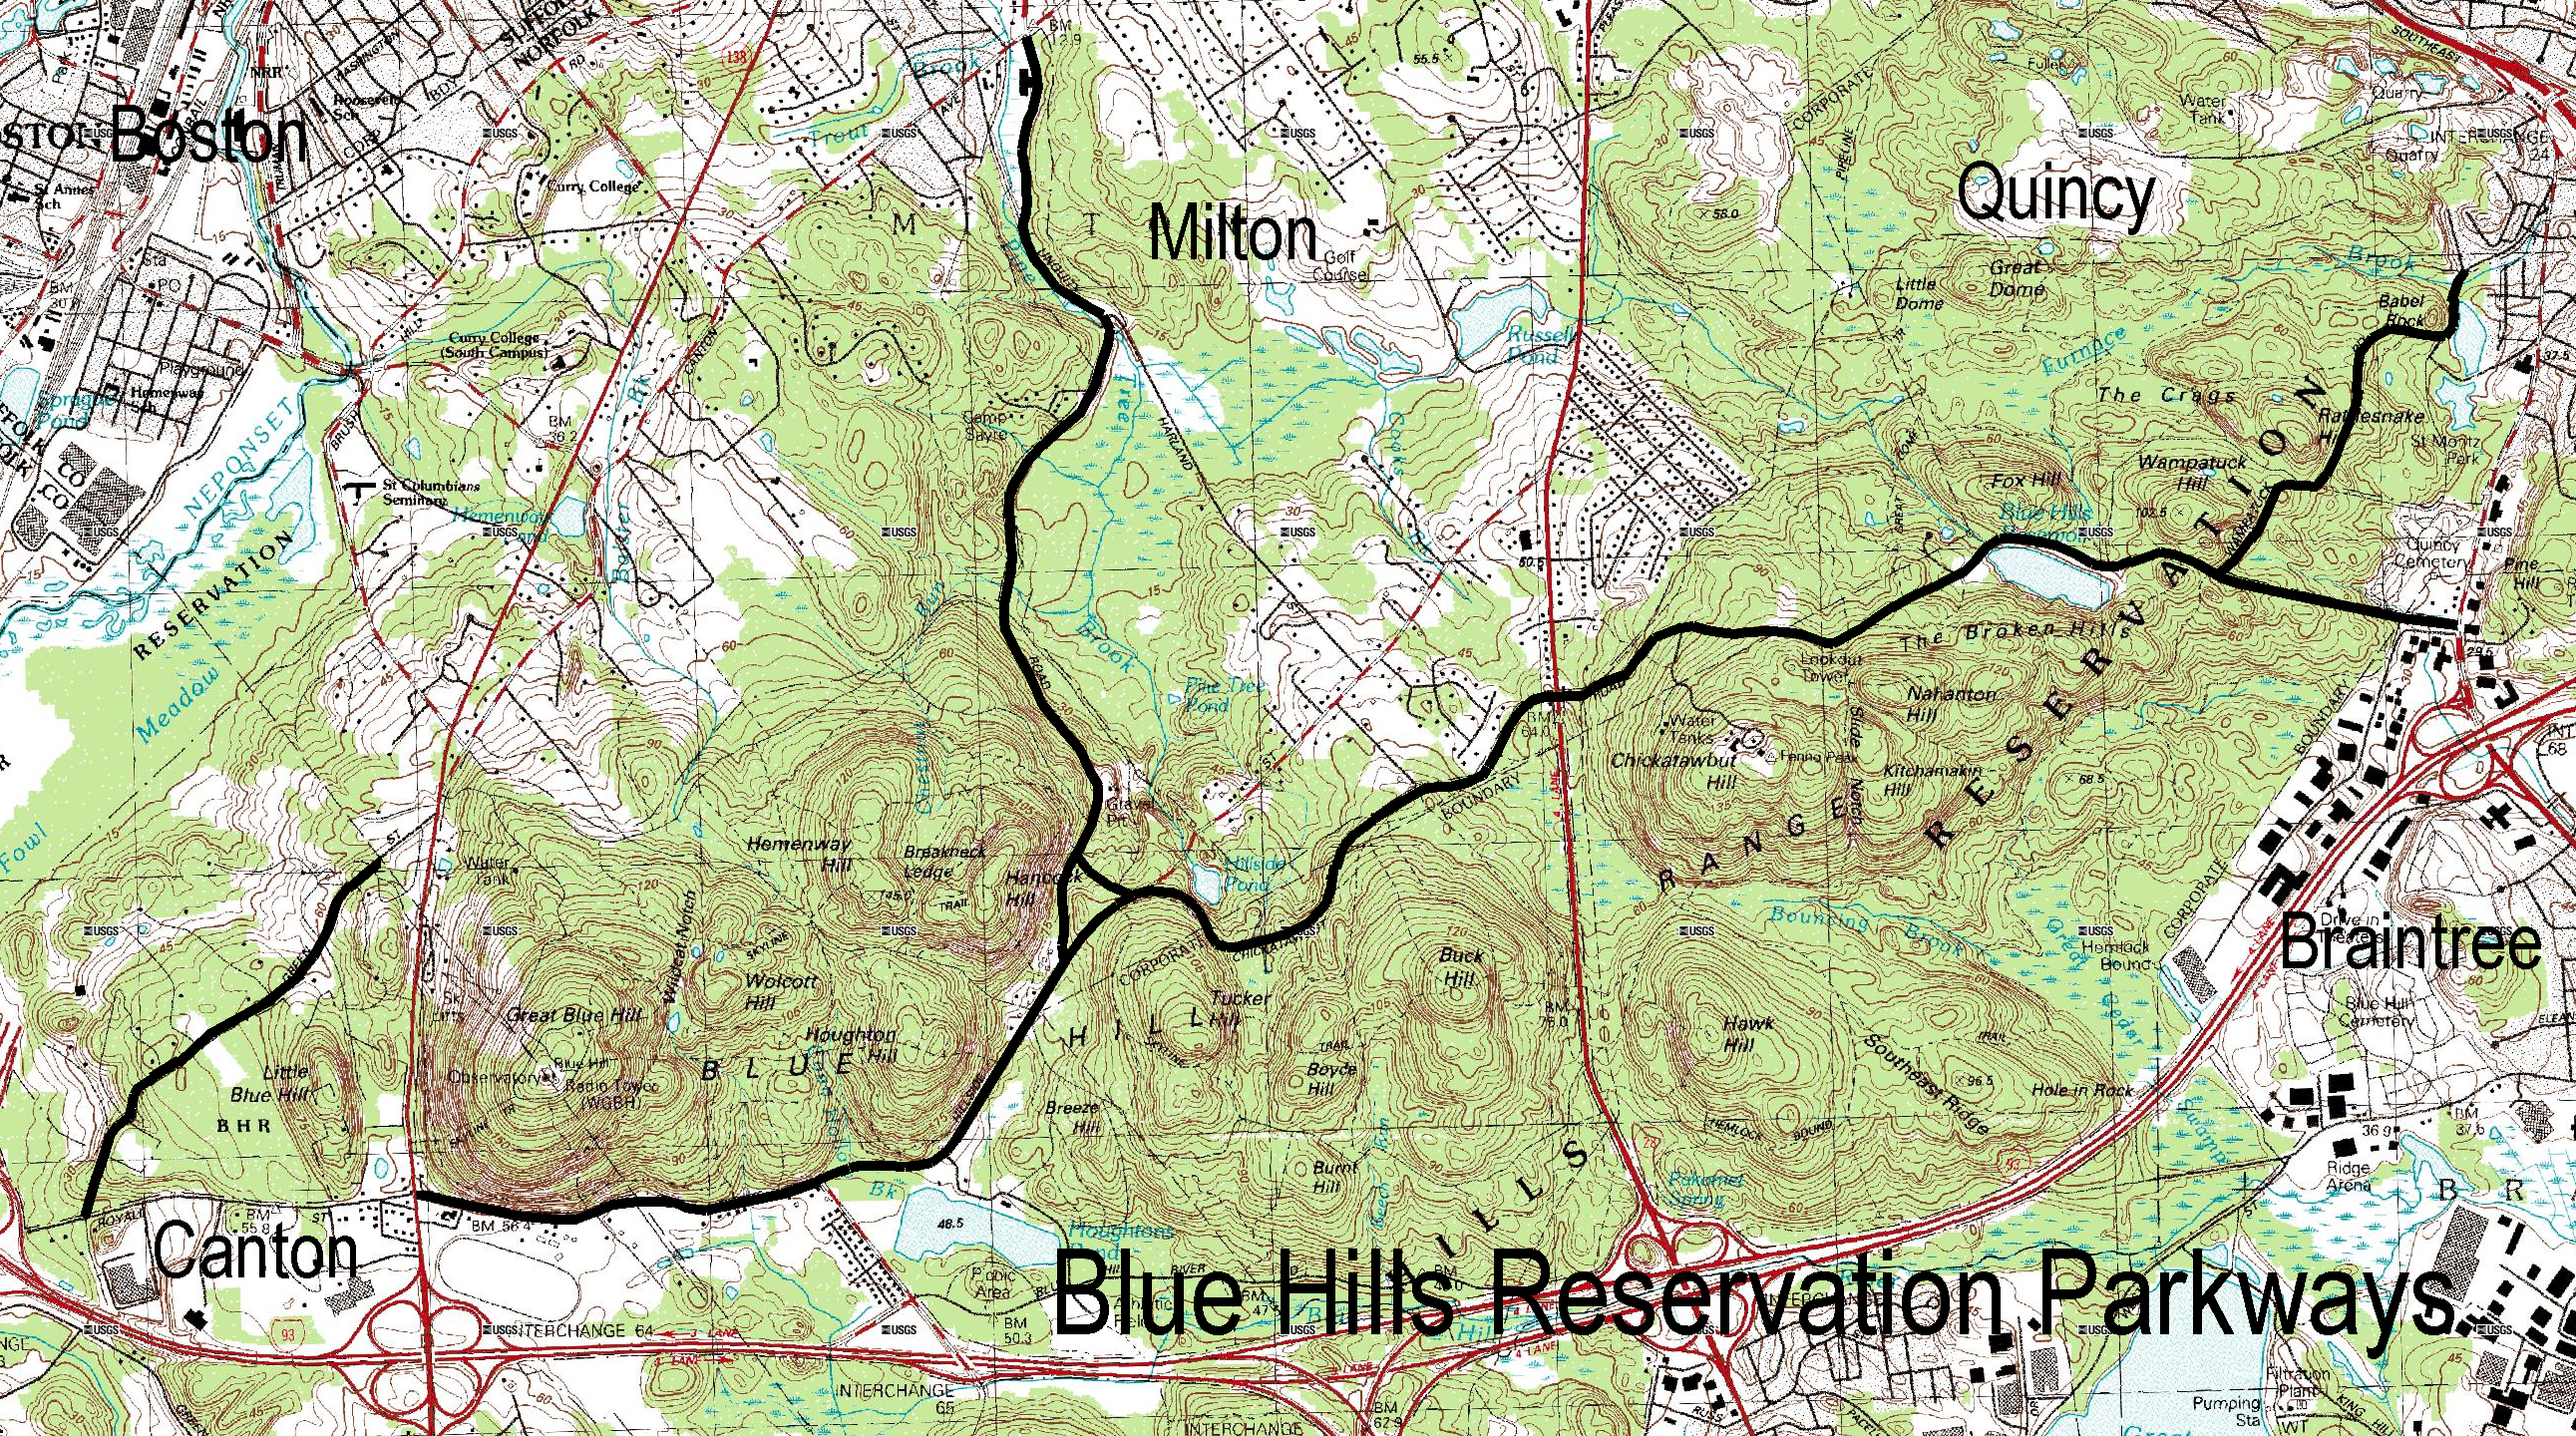 Blue Hills Reservation Map Blue Hills Reservation Parkways   Wikipedia